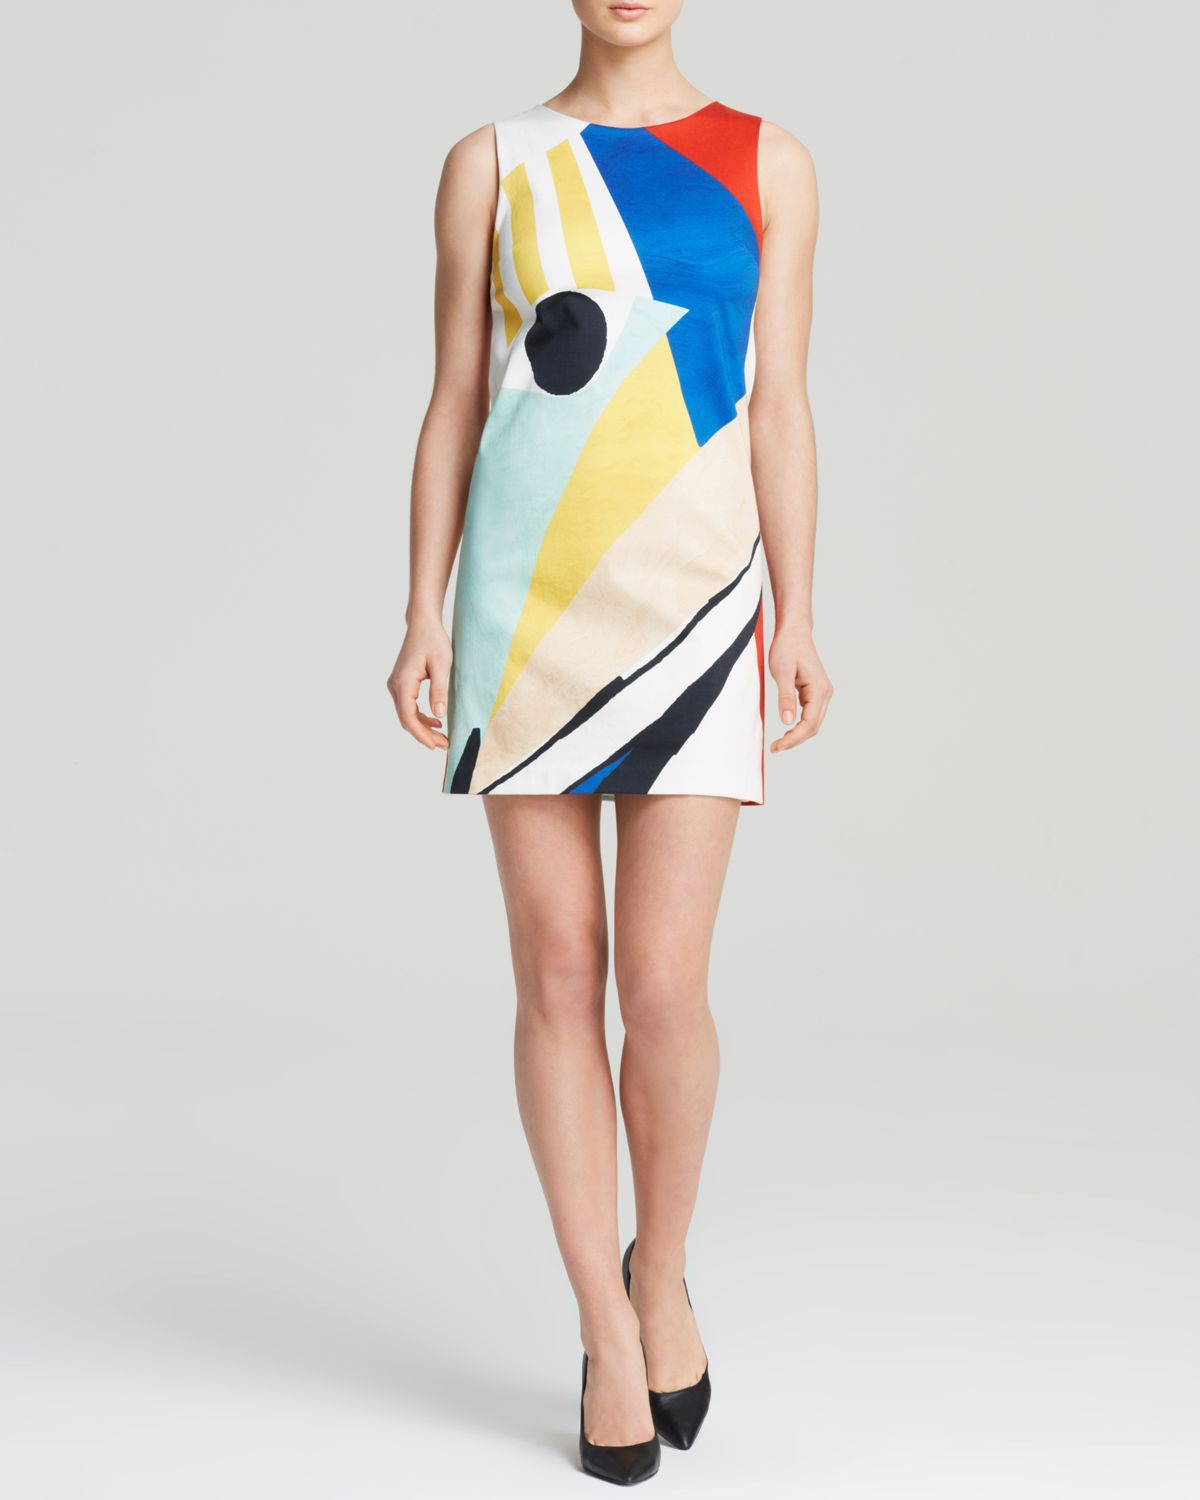 056e7b1a928 Alice + Olivia Dress - Clyde Color Block Shift - Lyst